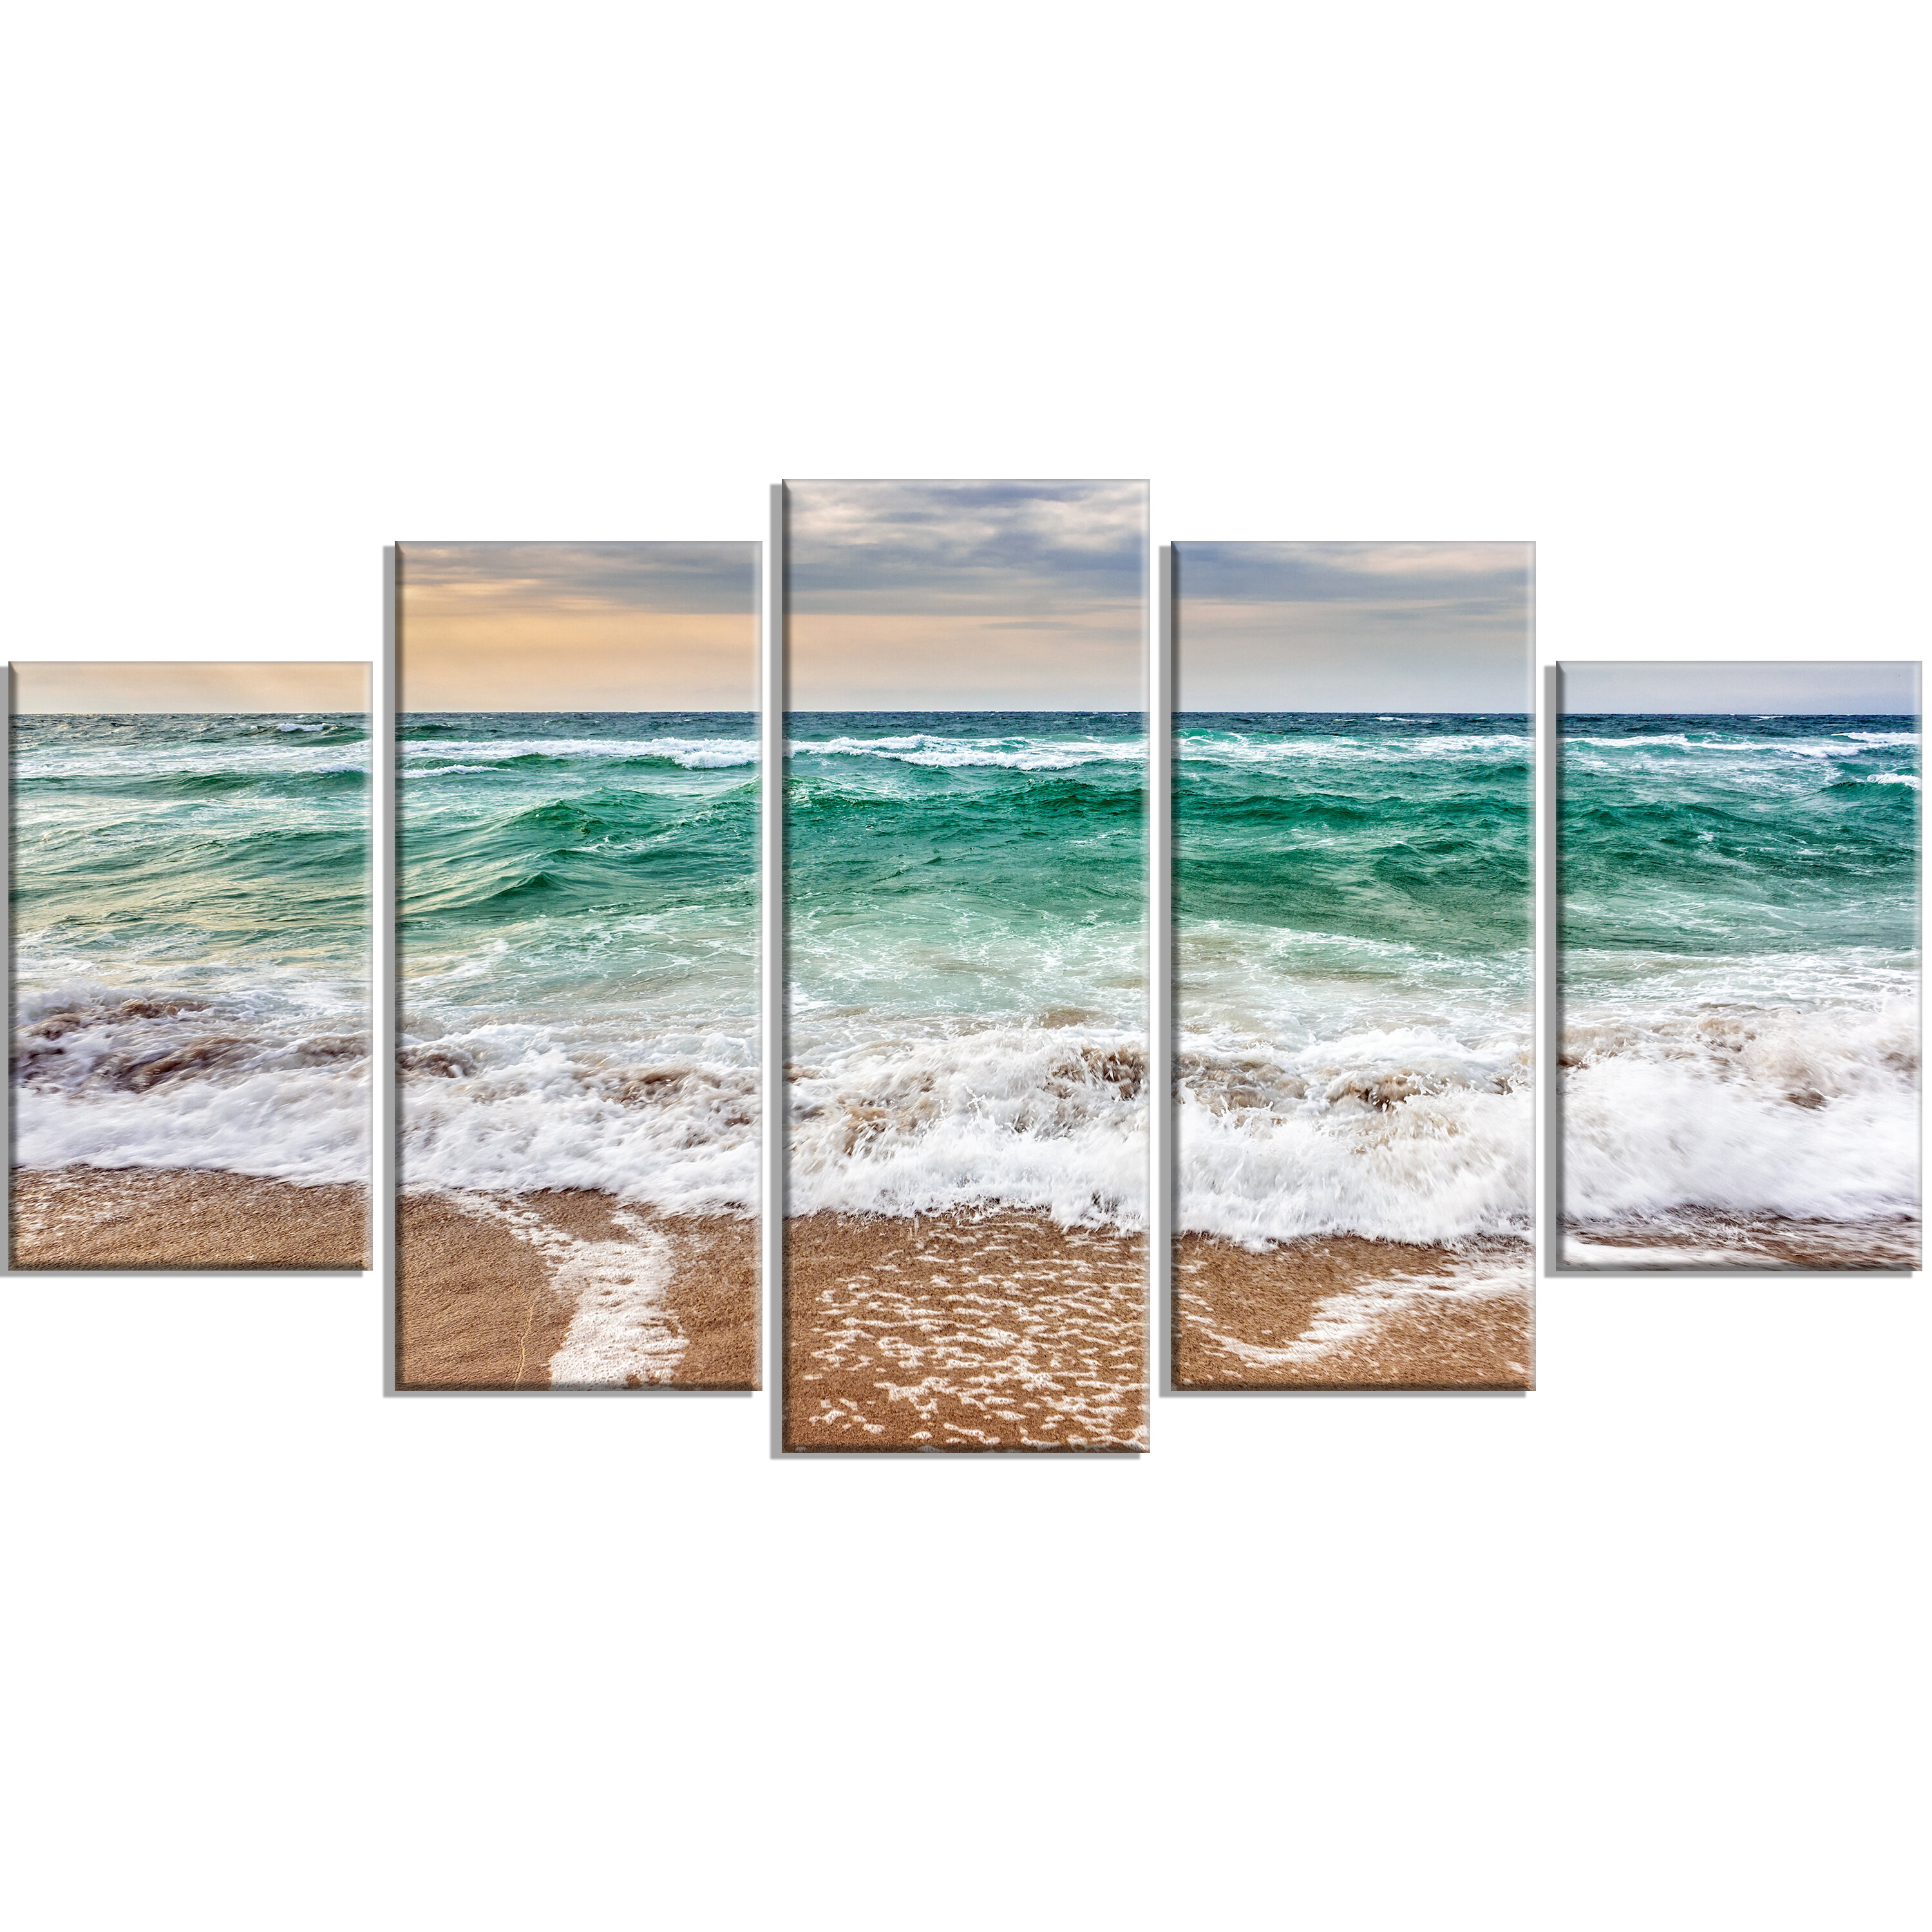 Designart Crystal Clear Blue Foaming Waves 5 Piece Wall Art On Wrapped Canvas Set Wayfair